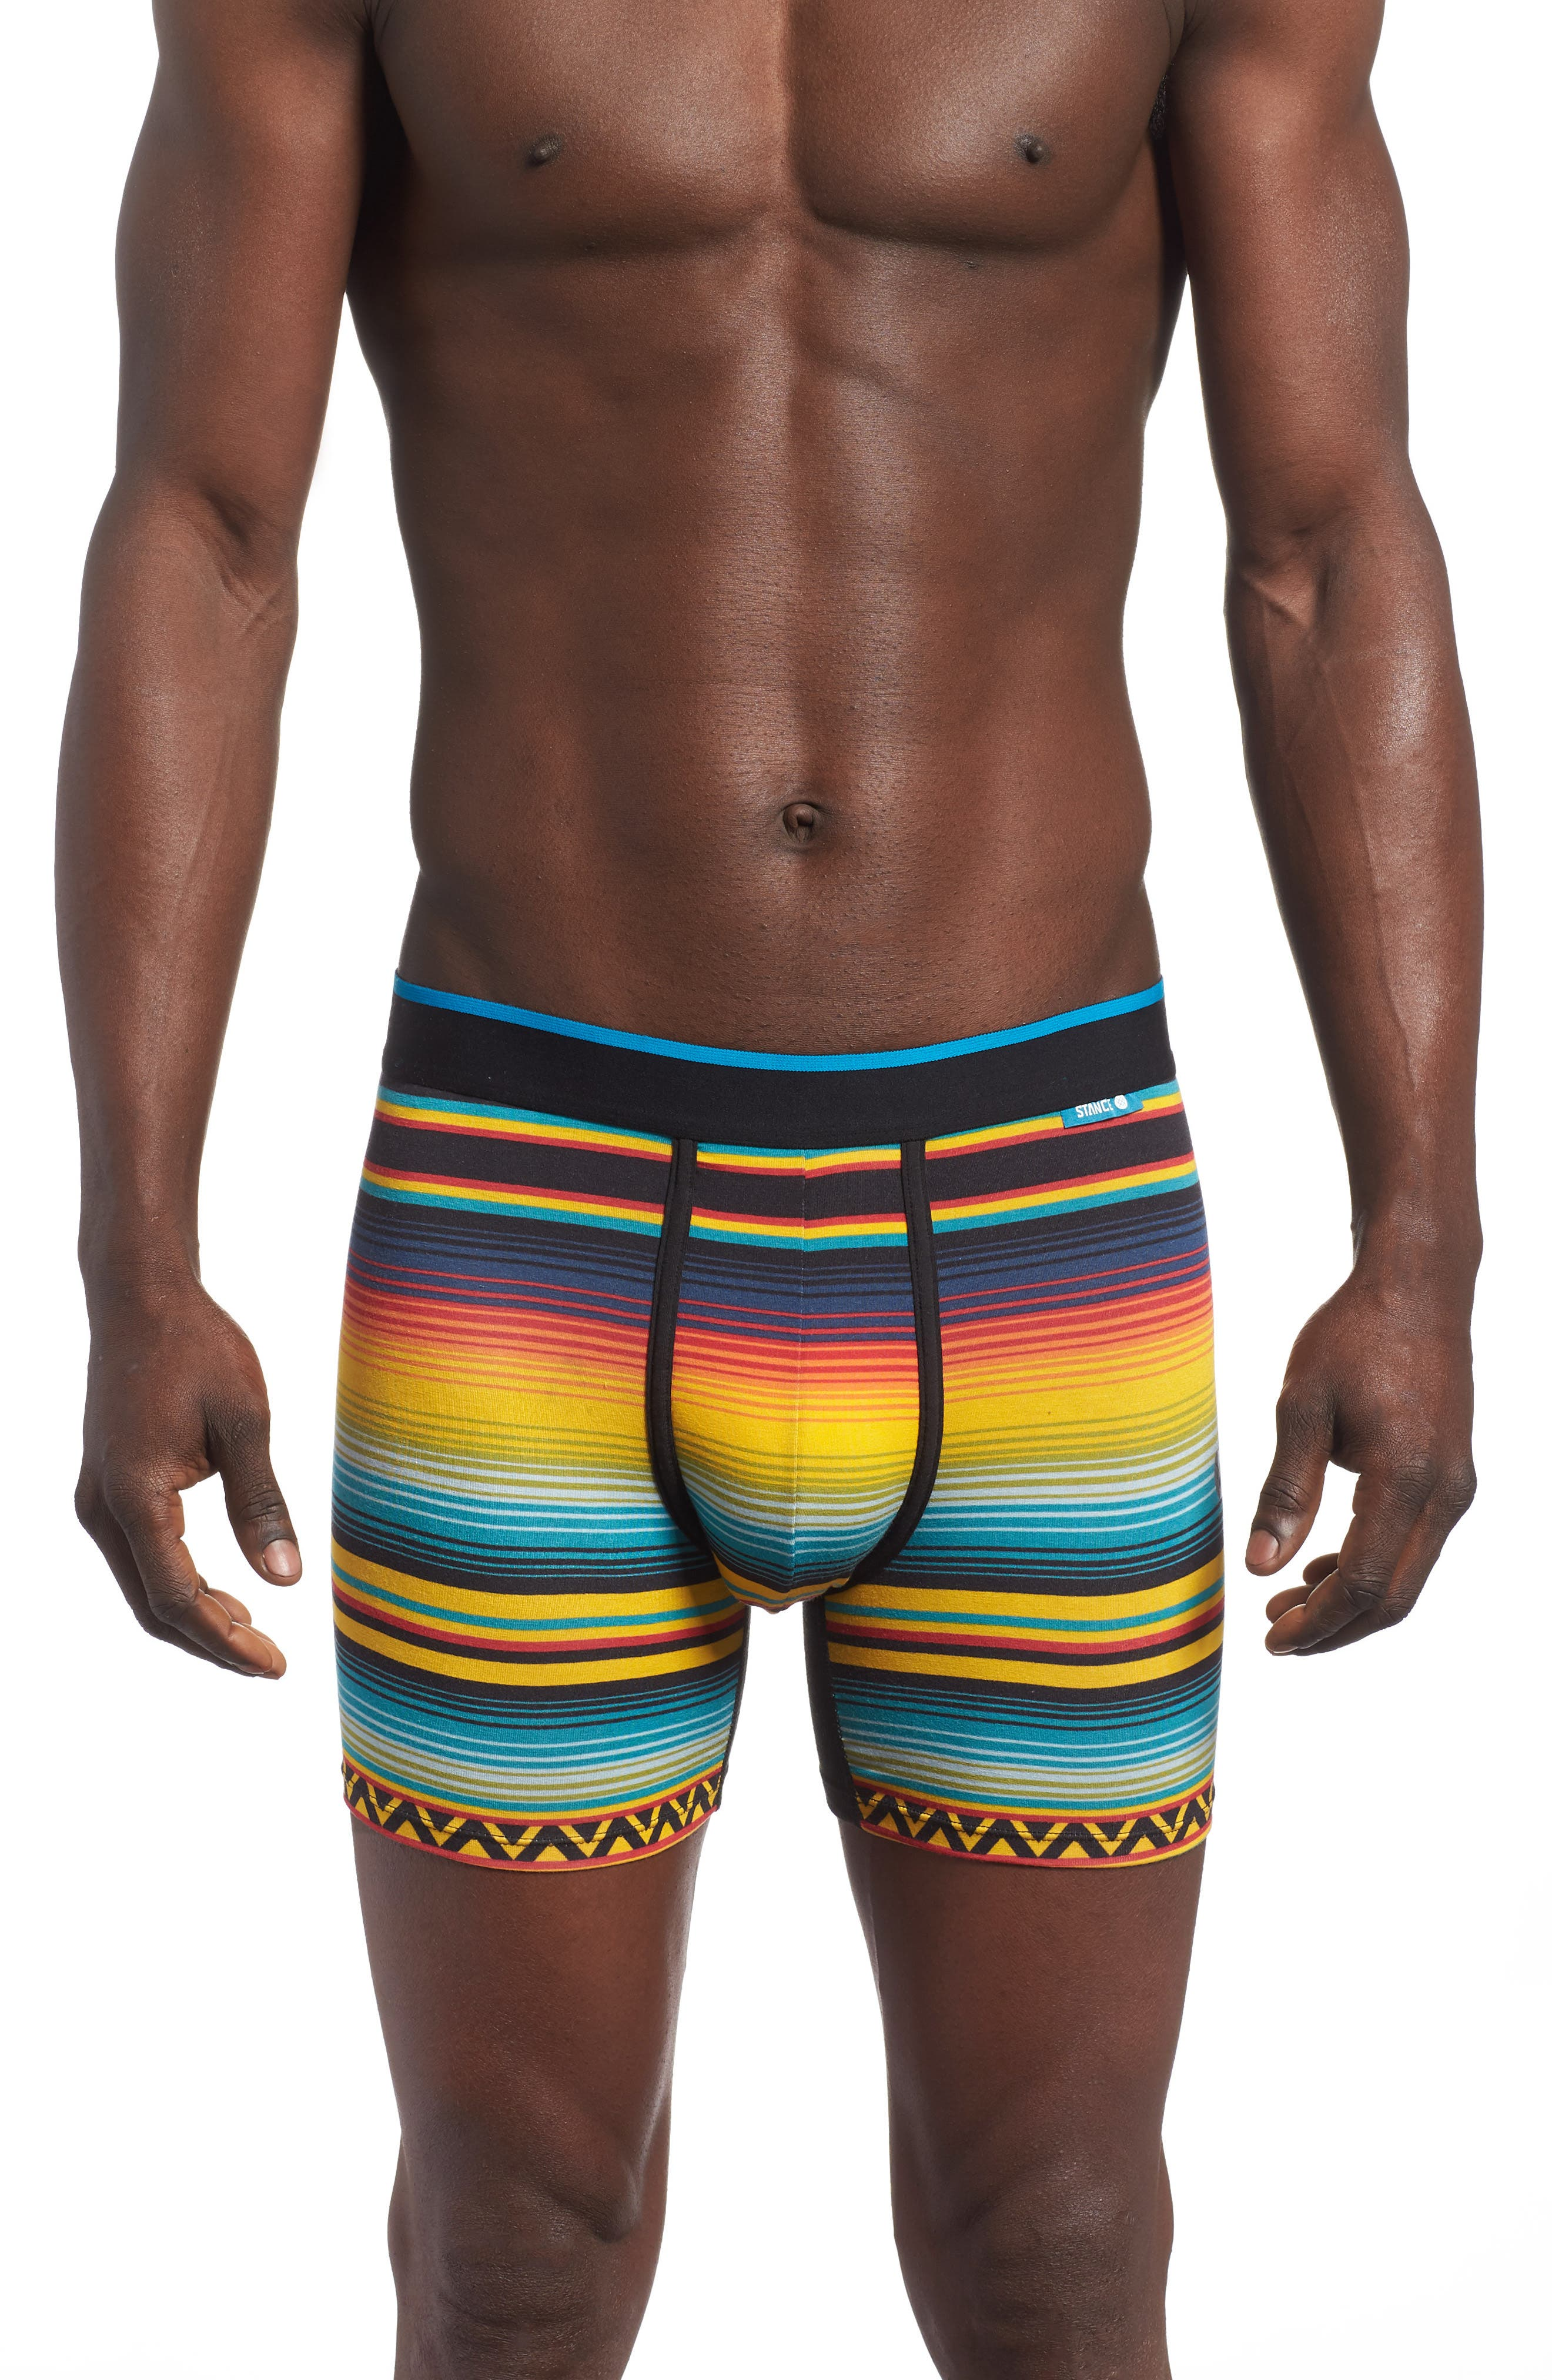 Dark Days Wholester Boxer Briefs,                             Main thumbnail 1, color,                             Yellow Multi